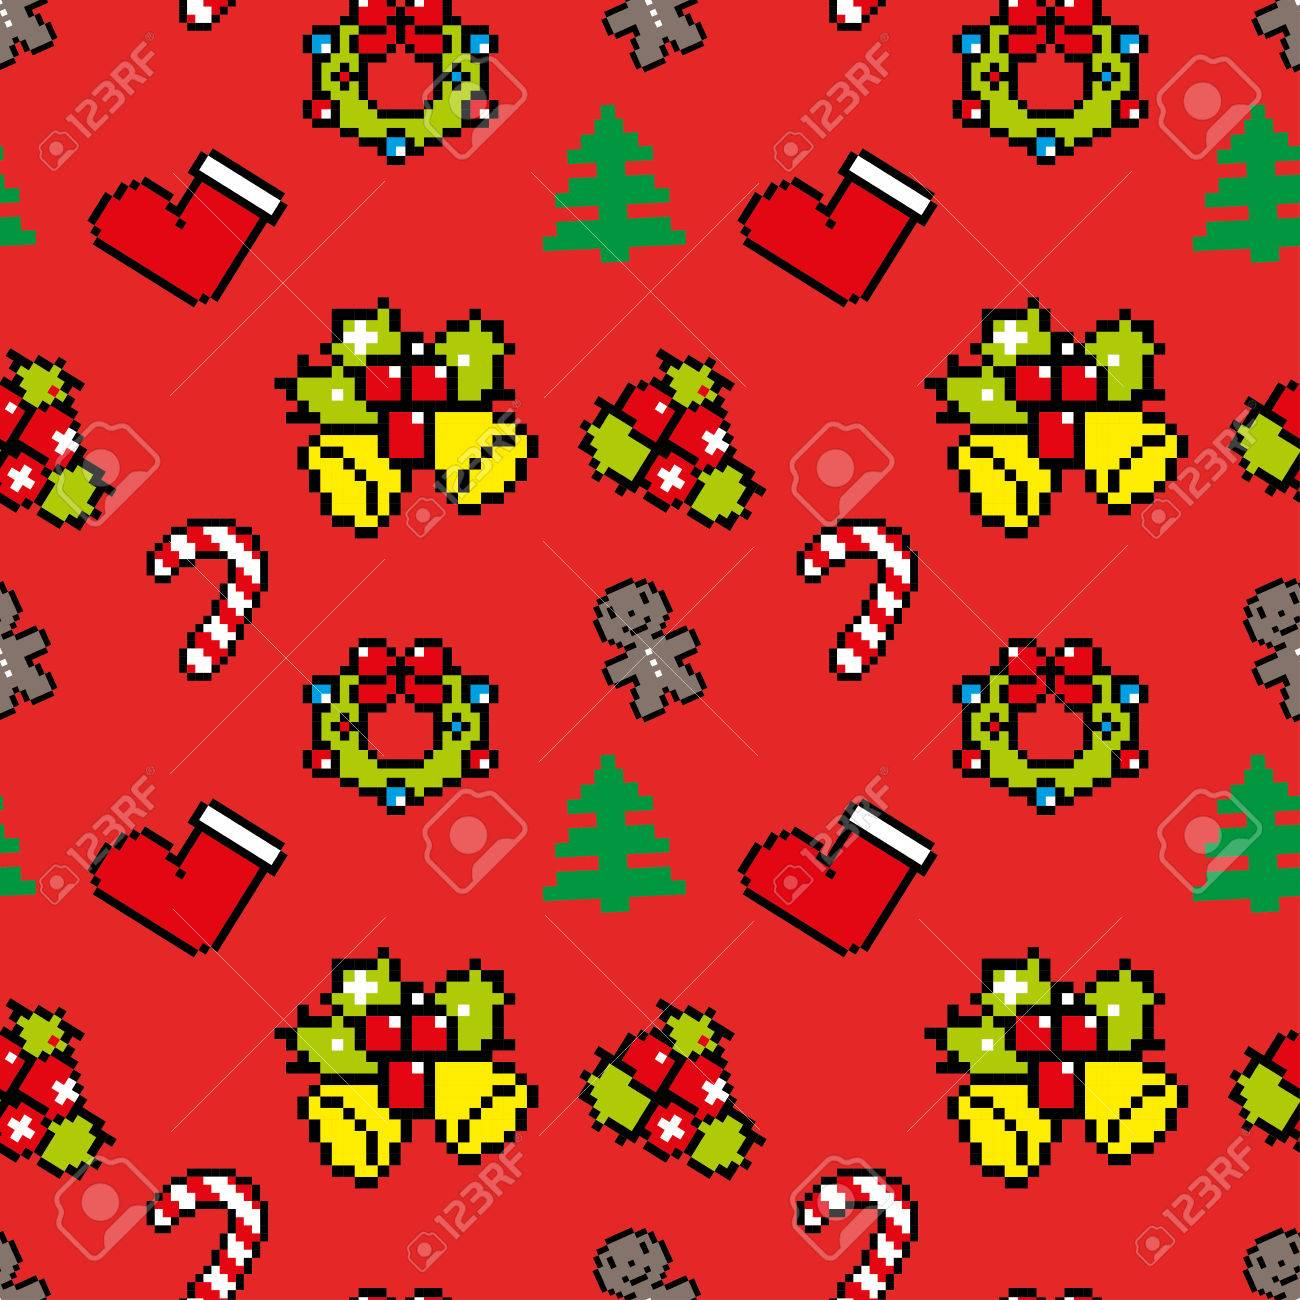 Background With Christmas Symbols Pixel Art Winter Pattern Red